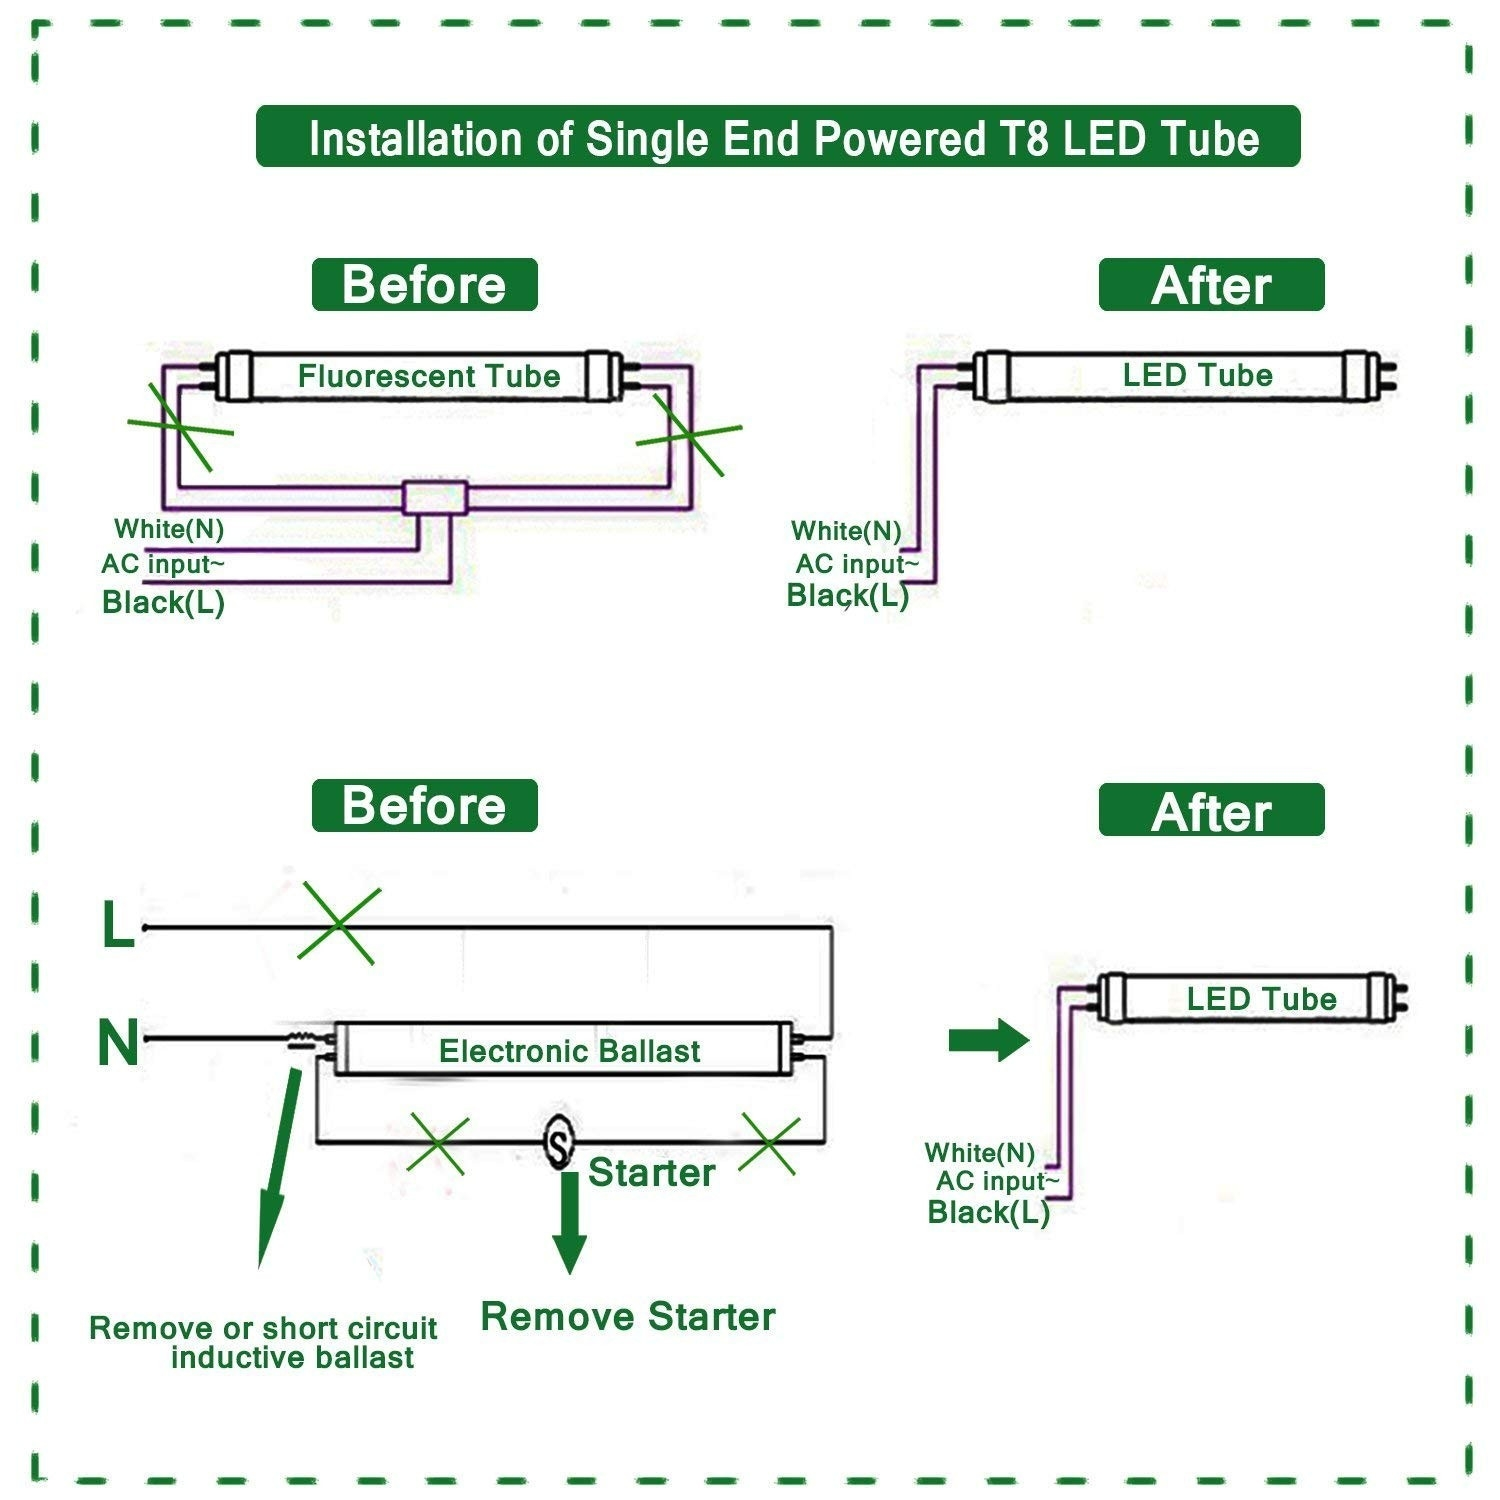 led fluorescent tube replacement wiring diagram Collection-Wiring Diagram For Fluorescent Lights New Wiring Diagram For Fluorescent Light Fresh Wiring Diagram For Led 18-q